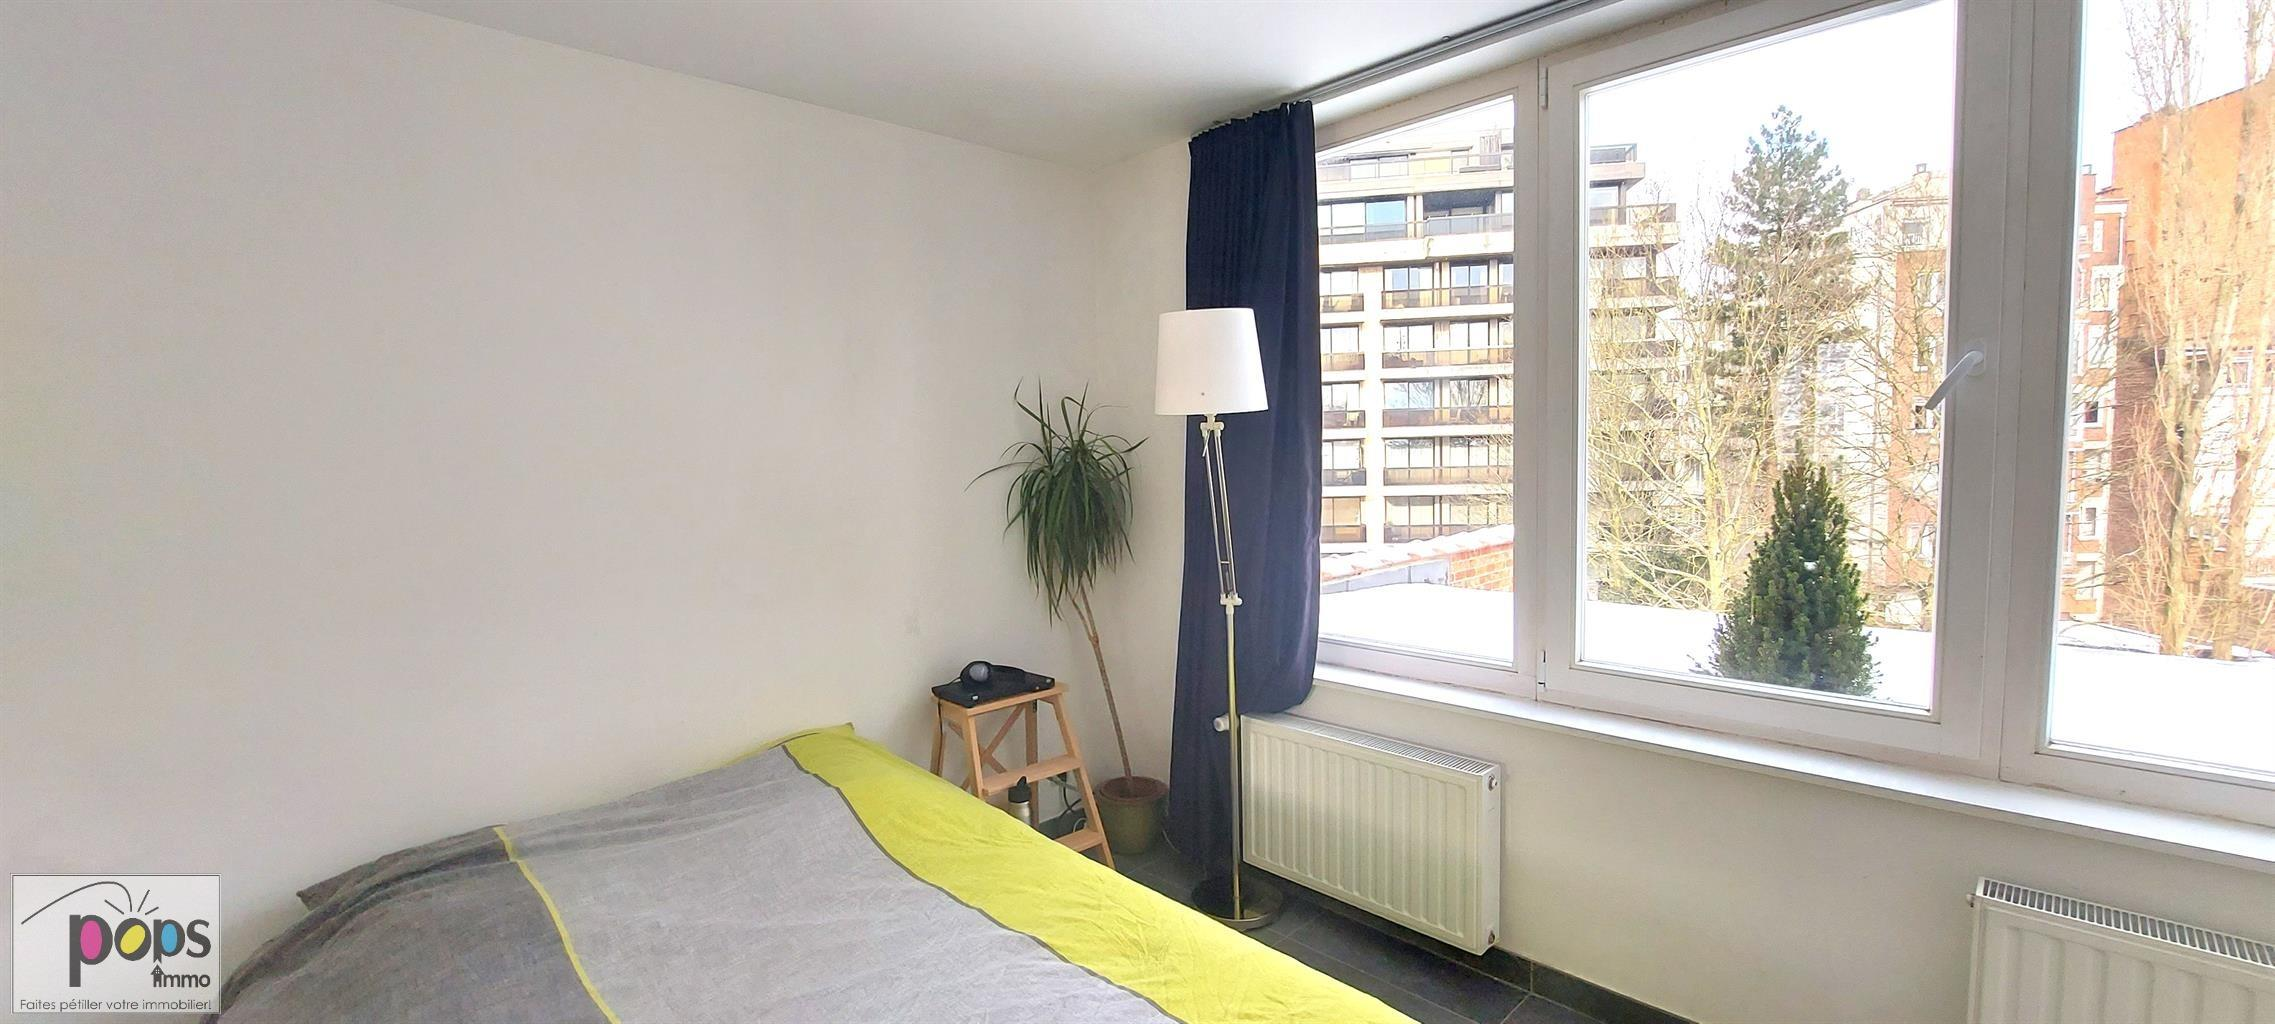 Appartement - Uccle - #4294712-5